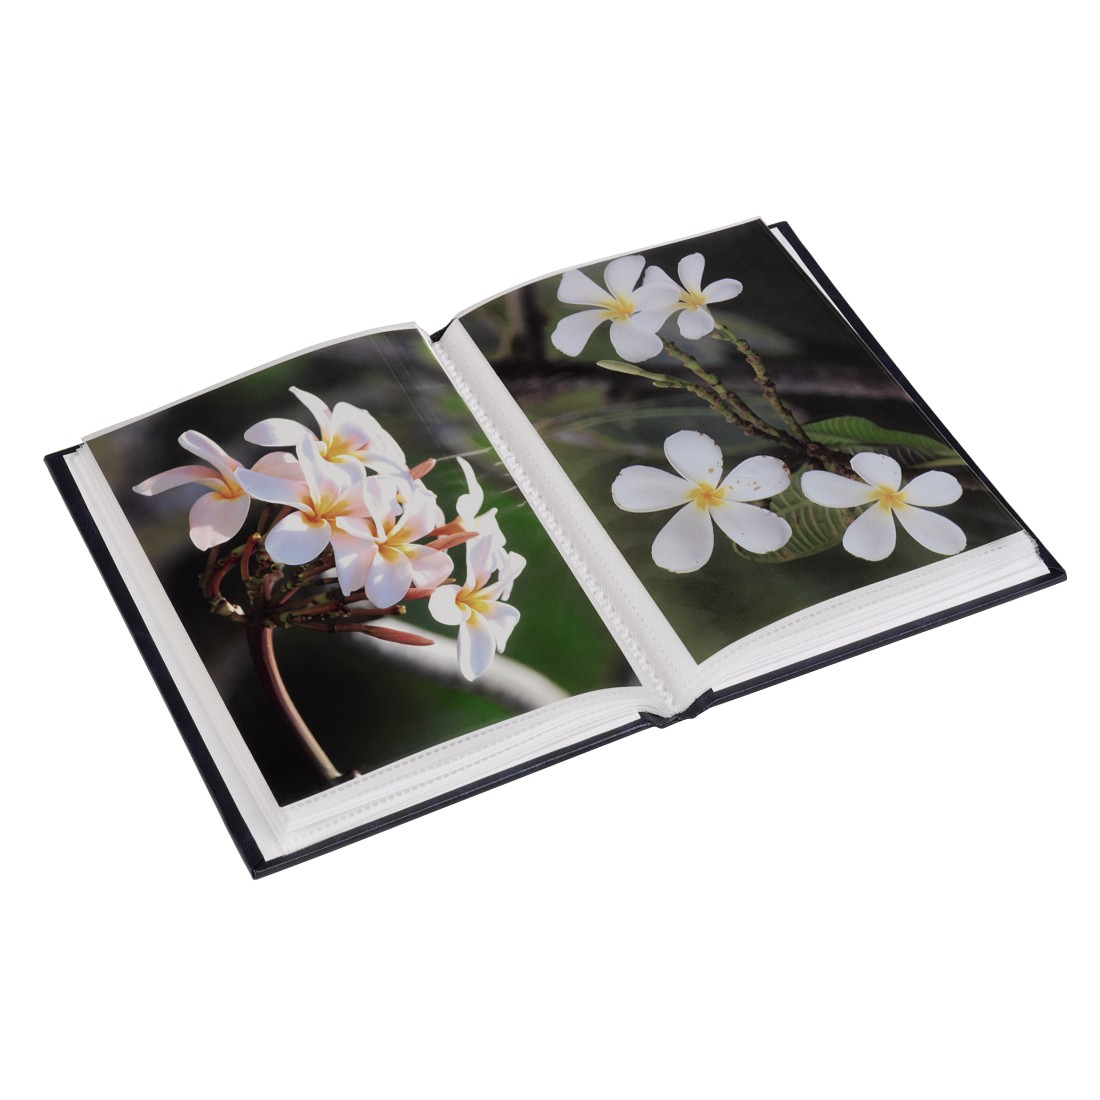 "awx High-Res Appliance - Hama, ""Birmingham"" Mini Slip-In Album, for 24 photos, size: 13x18 cm, assorted"